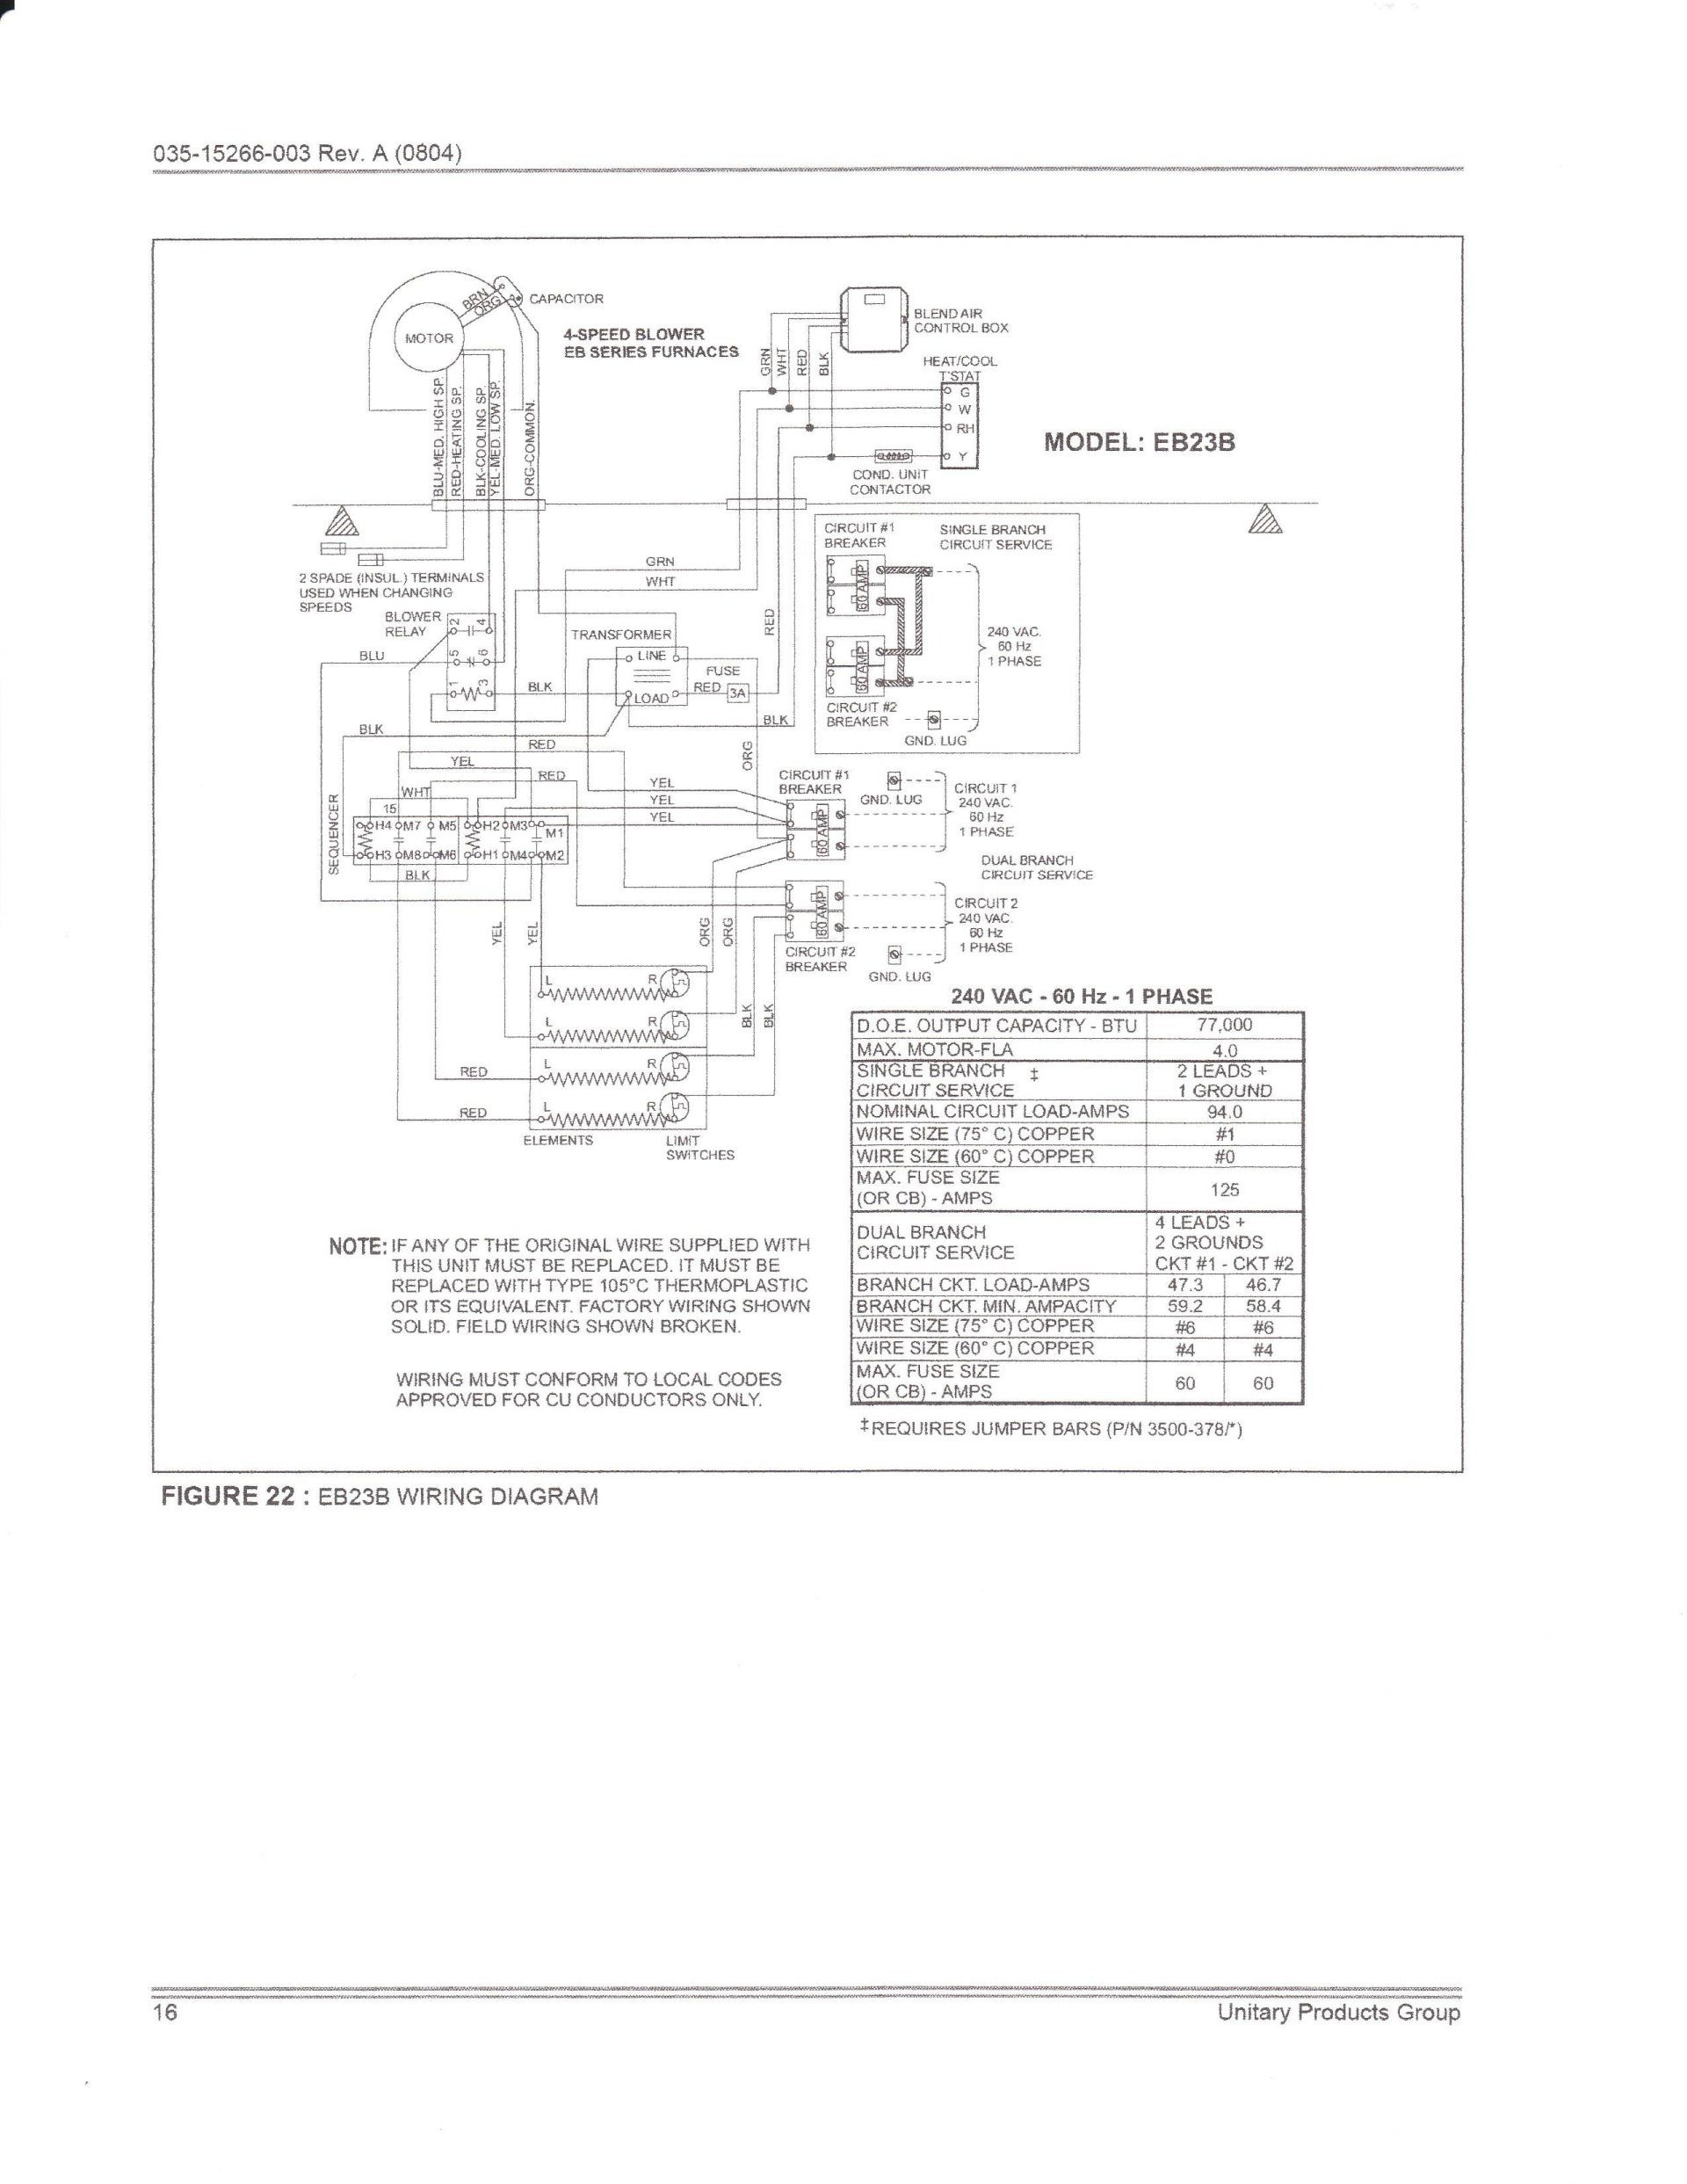 Duo therm rv air conditioner wiring diagram my wiring diagram duo therm rv air conditioner wiring diagram fresh duo therm thermostat wiring diagram diagram of duo publicscrutiny Image collections